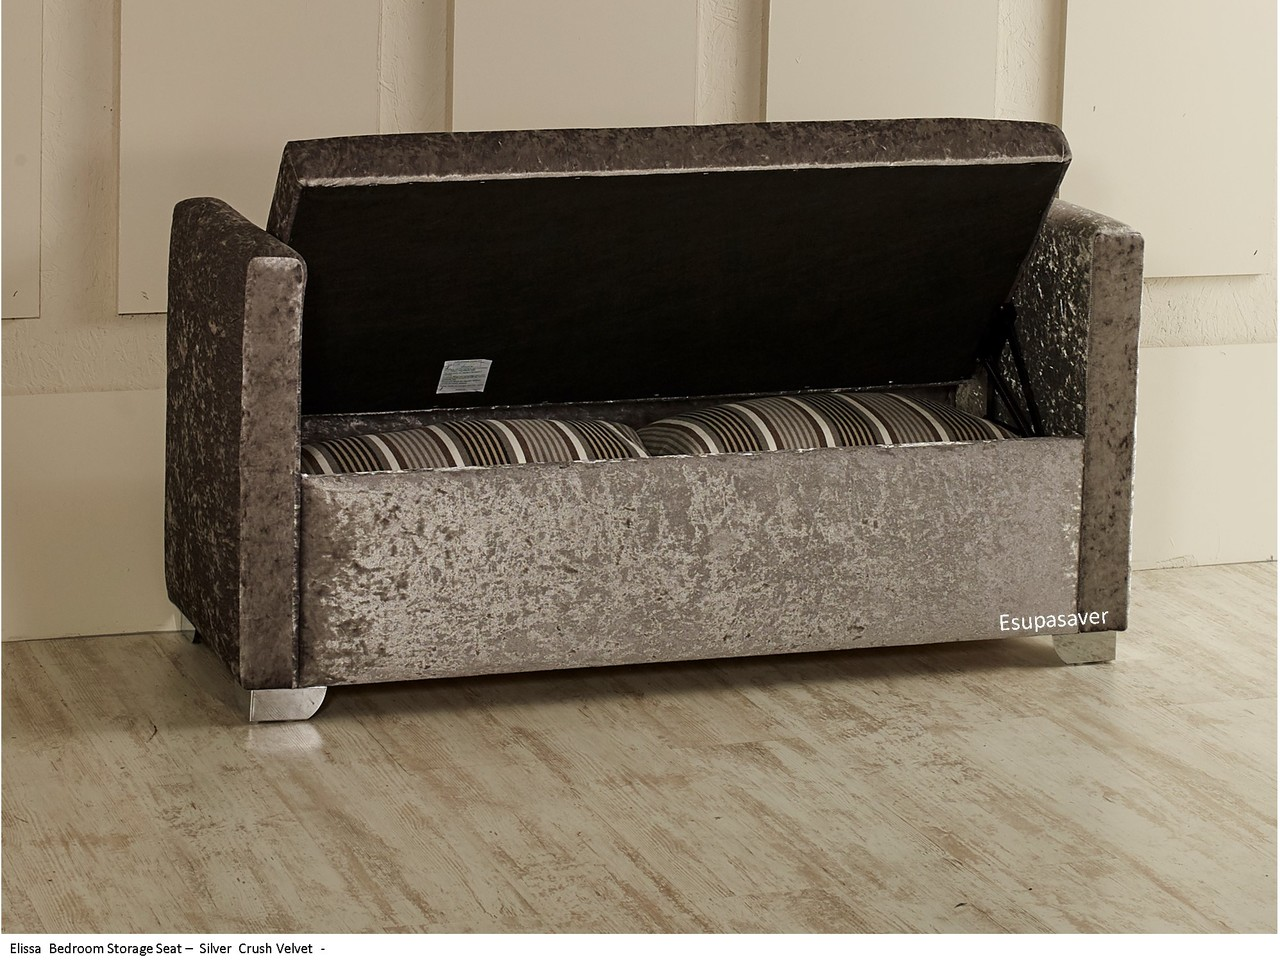 Elissa Ottoman Storage Box Seat. Photo displaying silver crush velvet fabric Available in a vast & Elissa Ottoman Storage Box Seat Available in Crush Velvet Chenille ...